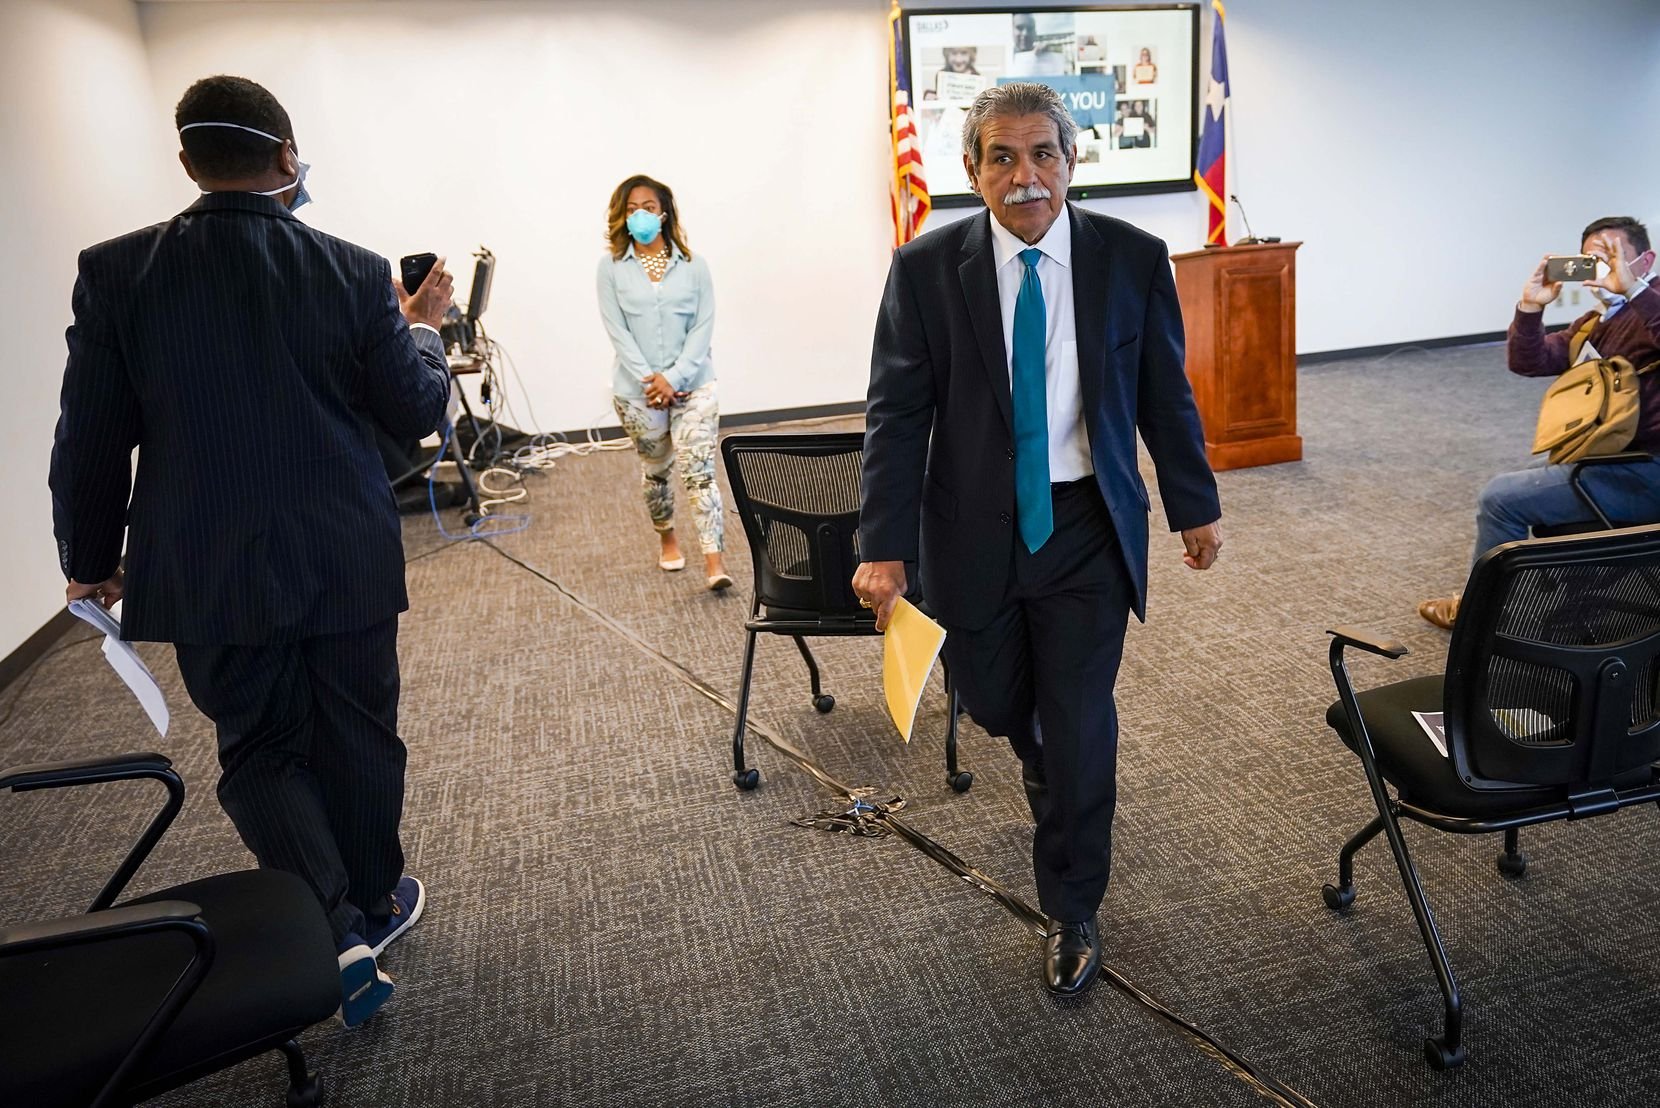 DISD superintendent Michael Hinojosa departs a press conference to provide updates on the district's response to the COVID-19 pandemic at the Linus D. Wright Dallas ISD Administration Building on Monday, April 6, 2020, in Dallas.